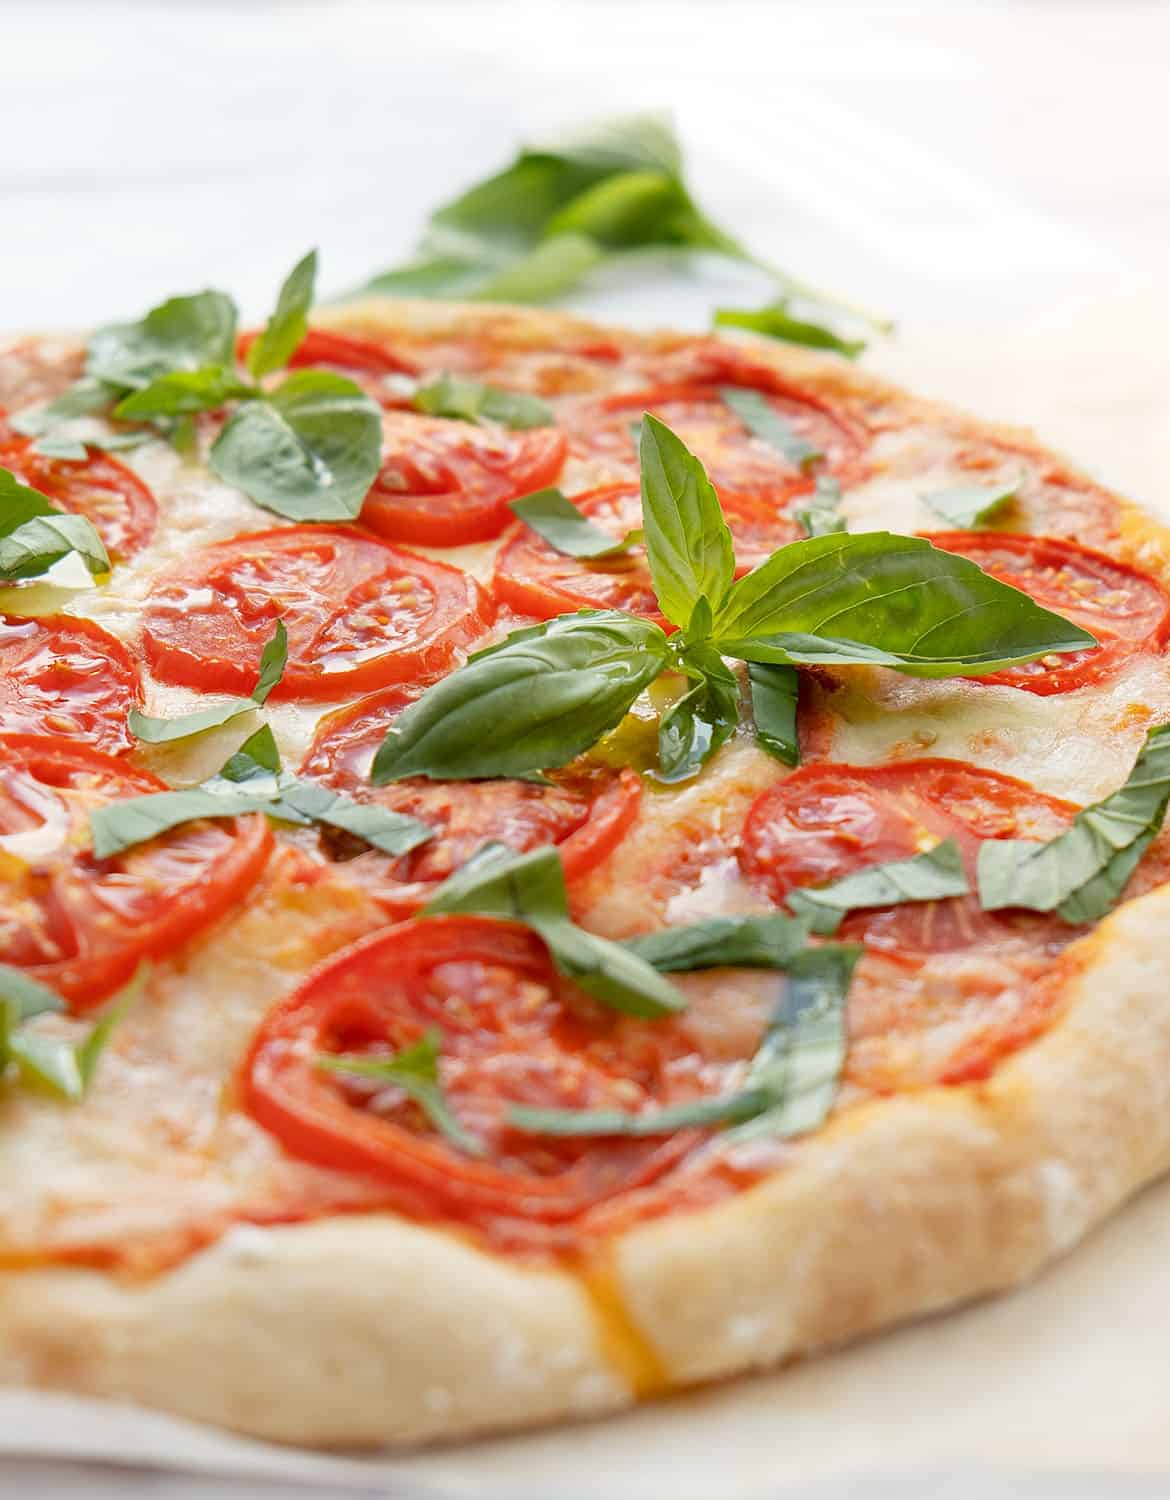 A delicious Caprese pizza on a white plate with green basil leaves.